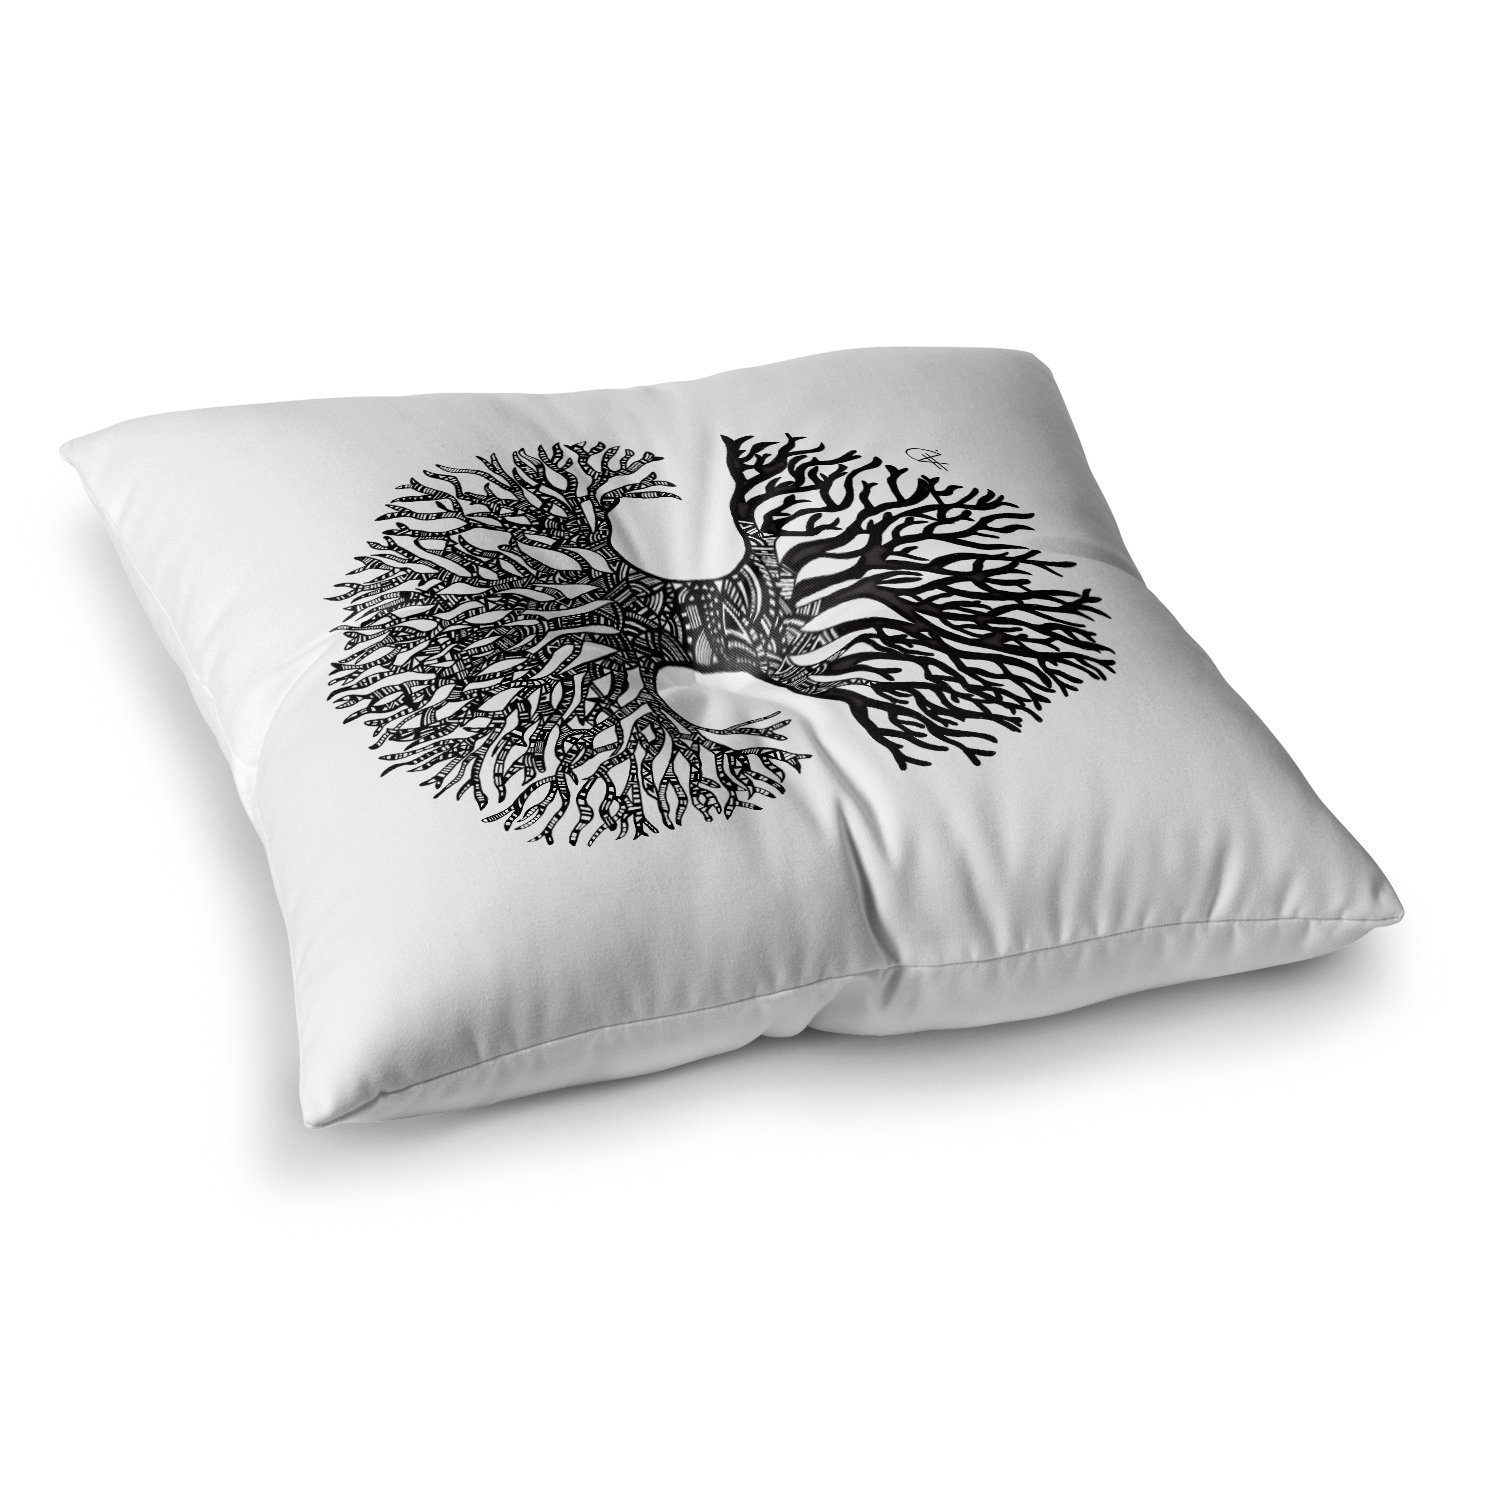 Kess InHouse Adriana De Leon The Tree of Life Black White, 26' x 26' Square Floor Pillow